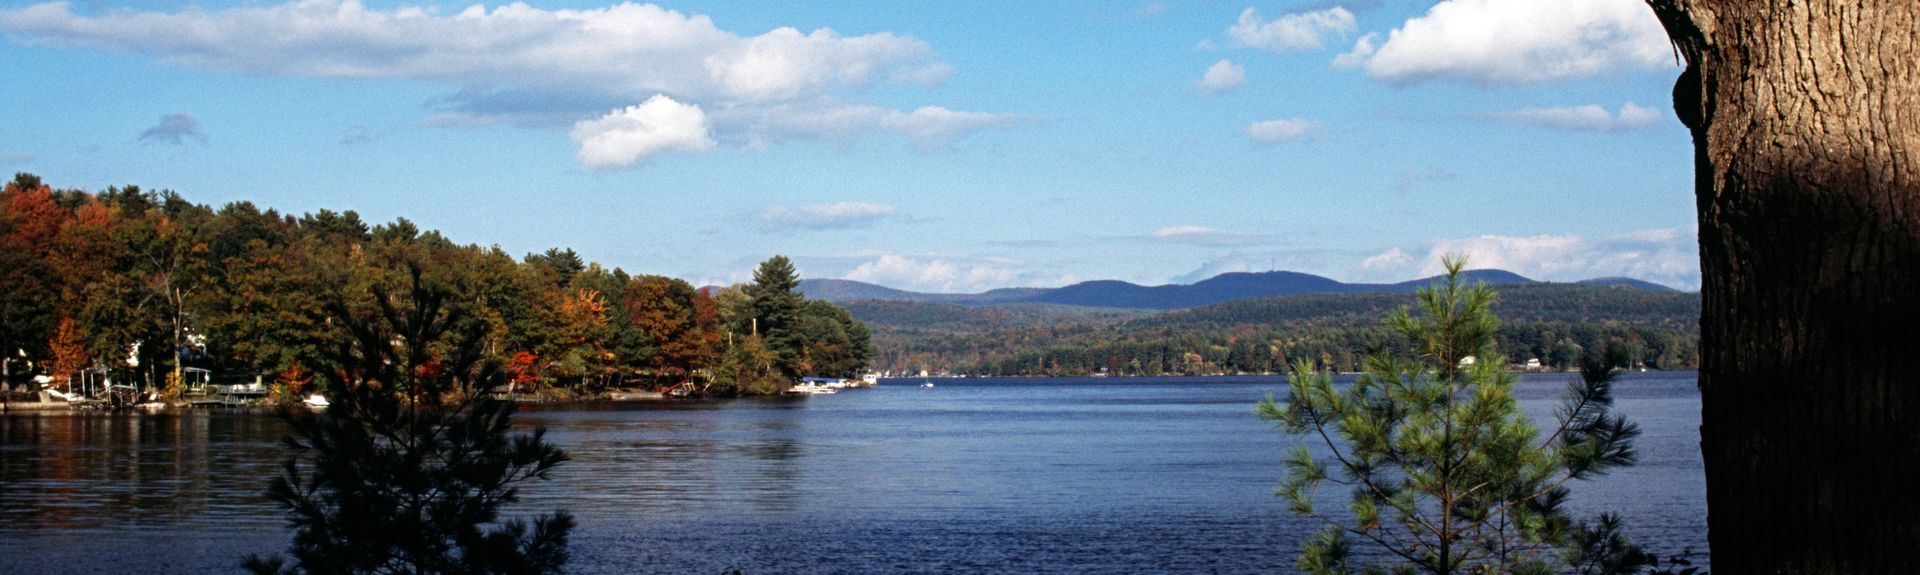 Lake Bomoseen, Fair Haven, Vermont, Verenigde Staten